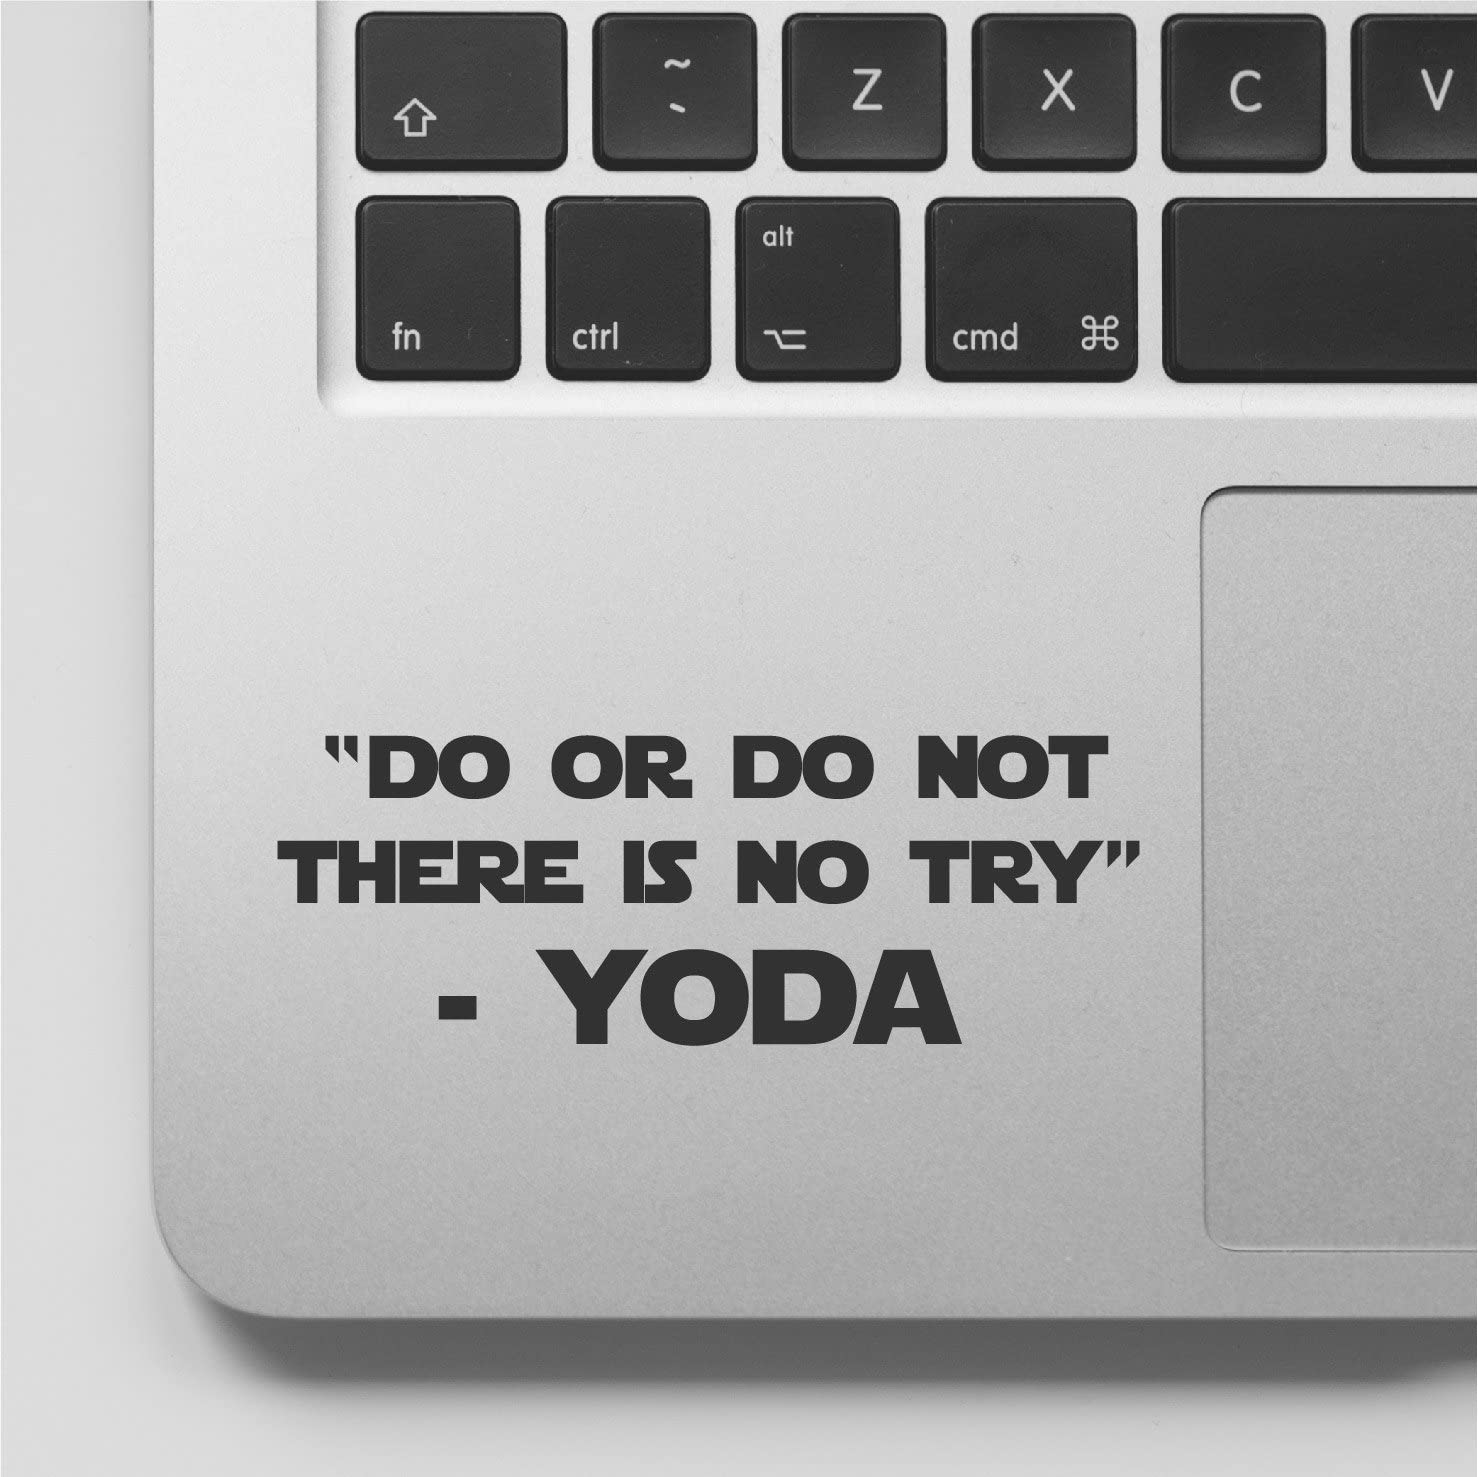 Wicked Decals YODA Quote - Do or Do Not There is no Try Laptop Decal Sticker Compatible with MacBook Retina, MacBook Air, MacBook Pro WD919